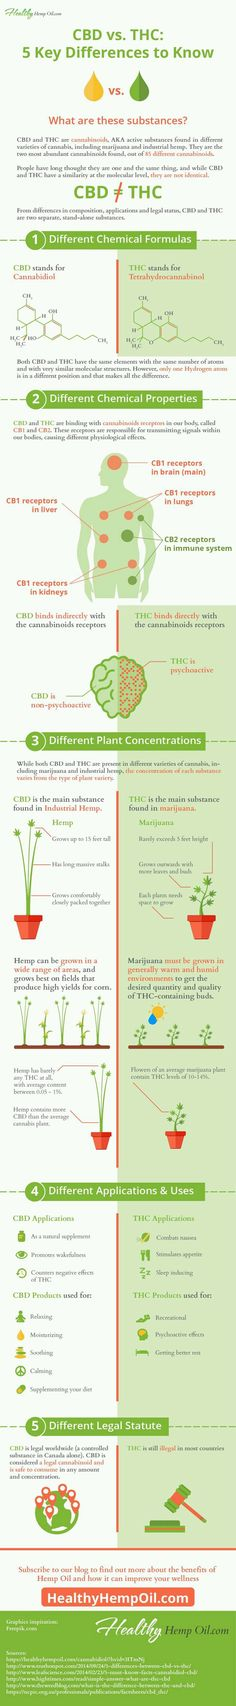 The Difference Between CBD and THC Infographic | GreenApple.md